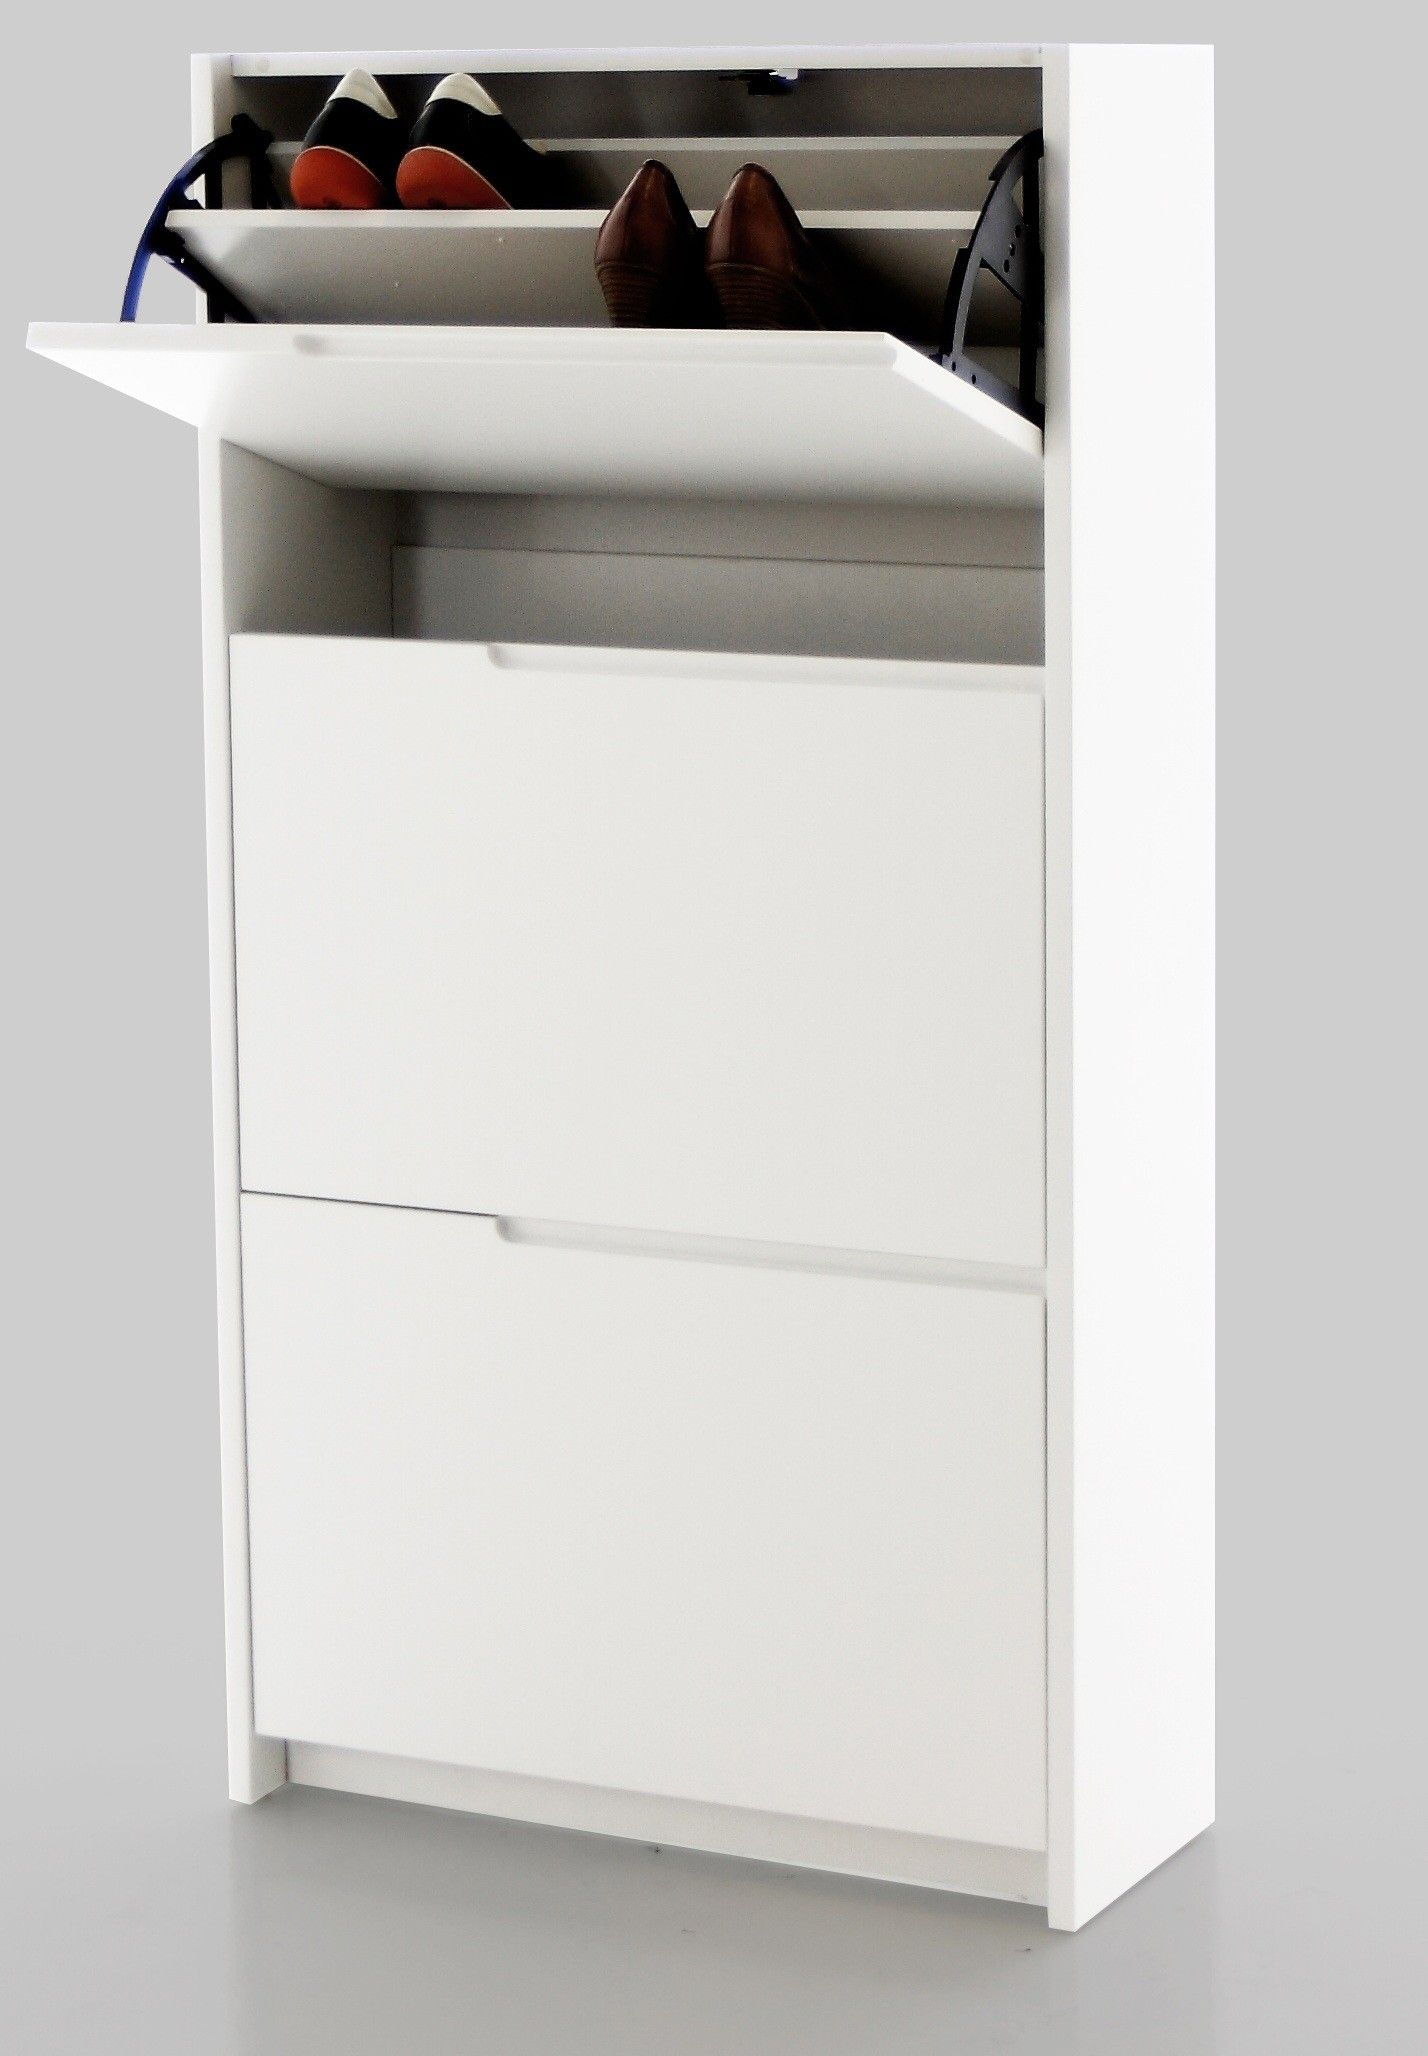 Impressionnant Meuble A Chaussures Blanc Filing Cabinet Storage Decor